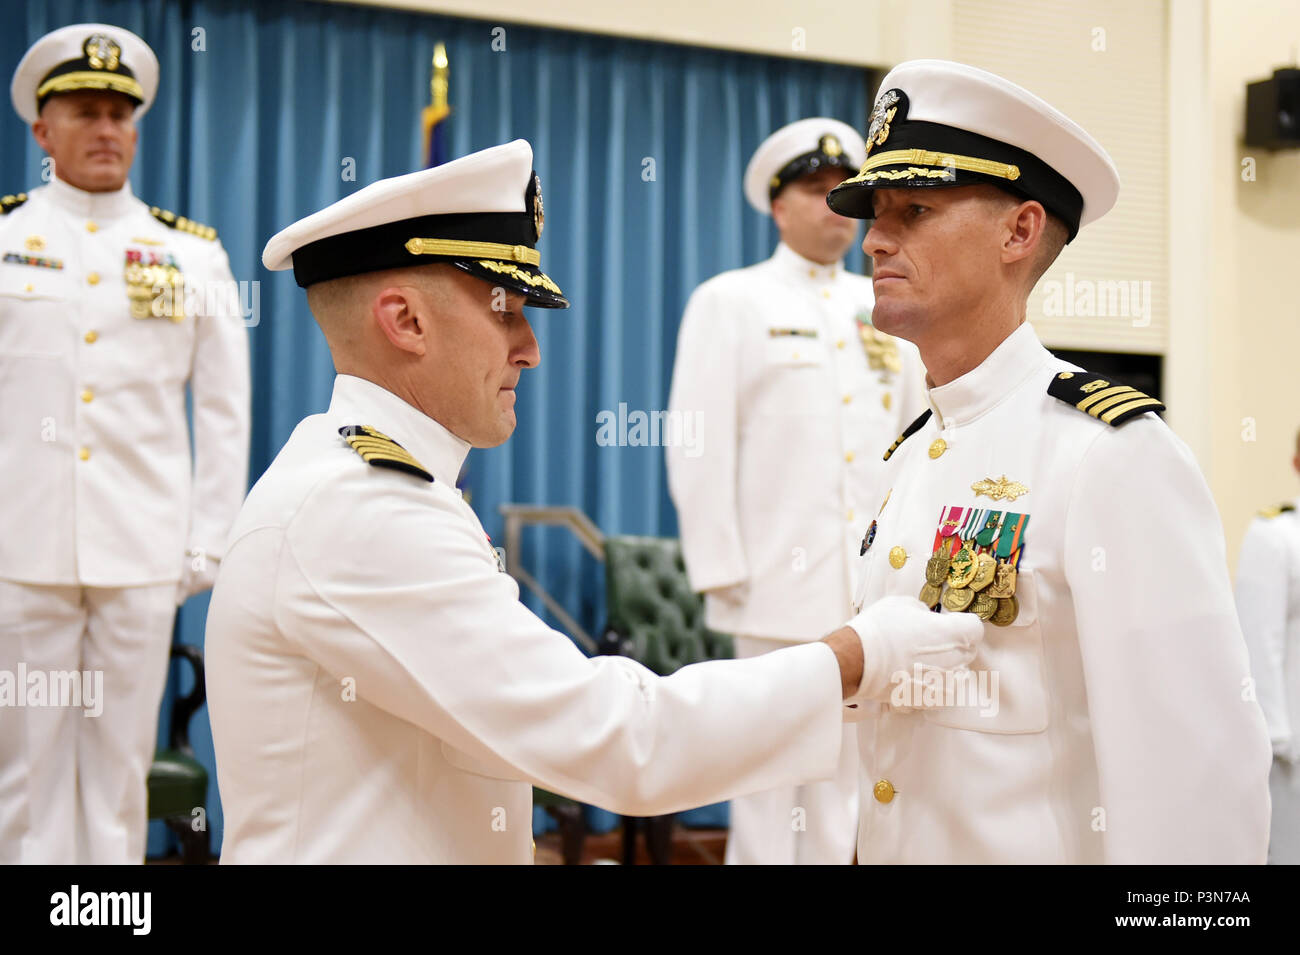 160708-N-DH124-055  OKINAWA, Japan (July 8, 2016) - Commander, 30th Naval Construction Regiment, Capt. Jeffrey Killian places the Meritorious Service Medal on Cmdr. Jeffrey Lengkeek during his change of command ceremony on Camp Shields in Okinawa, Japan, Jul. 8.  Cmdr. James Cho, transferring from Naval Facilities Engineering Command (NAVFAC) Southwest relieved Lengkeek, who has orders to Naval Special Warfare Development Group, as commanding officer of Naval Mobile Construction Battalion (NMCB) 4. (U.S. Navy photo by Mass Communication Specialist 1st Class Rosalie Chang/Released) - Stock Image